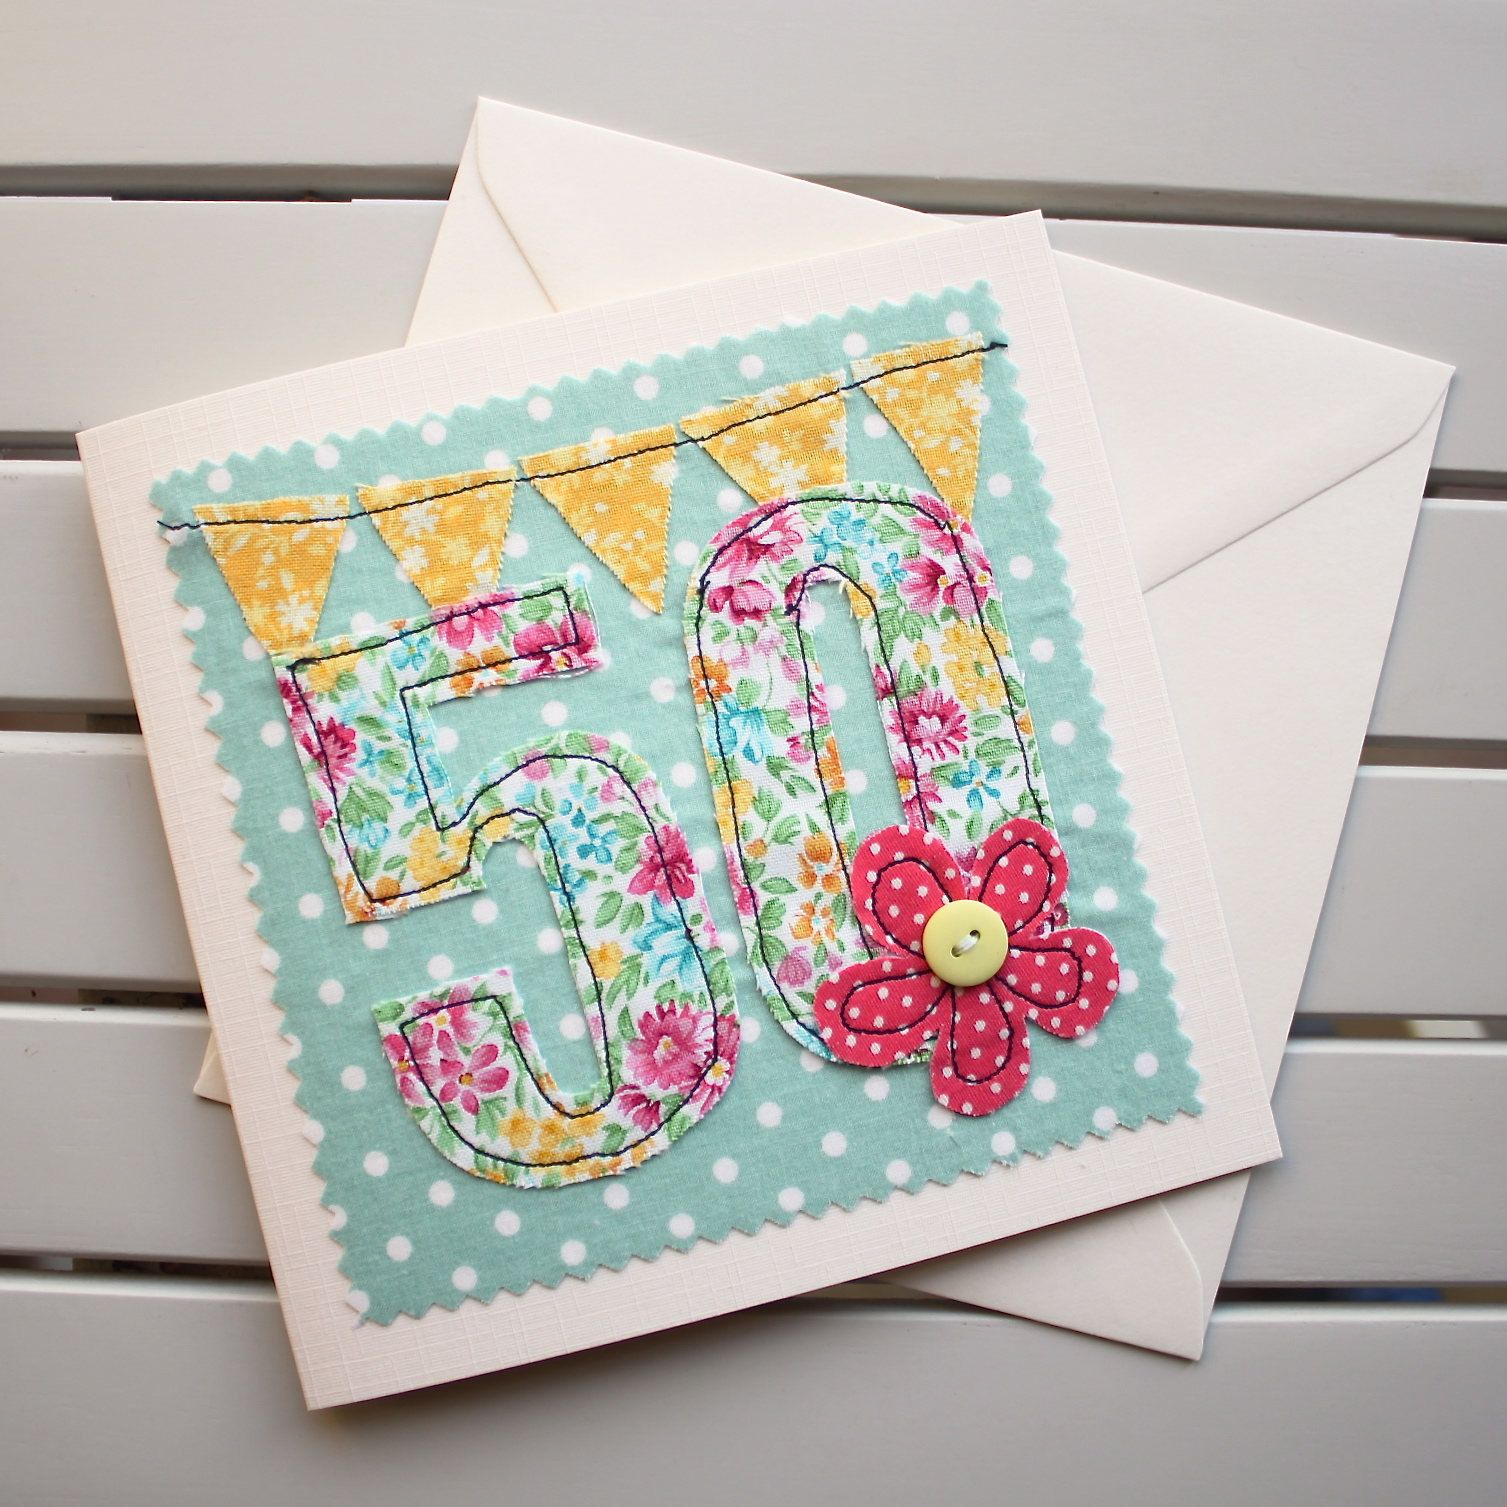 50th birthday card machine embroidered optional personalised 50th birthday card machine embroidered optional personalised insert handmade greetings card m4hsunfo